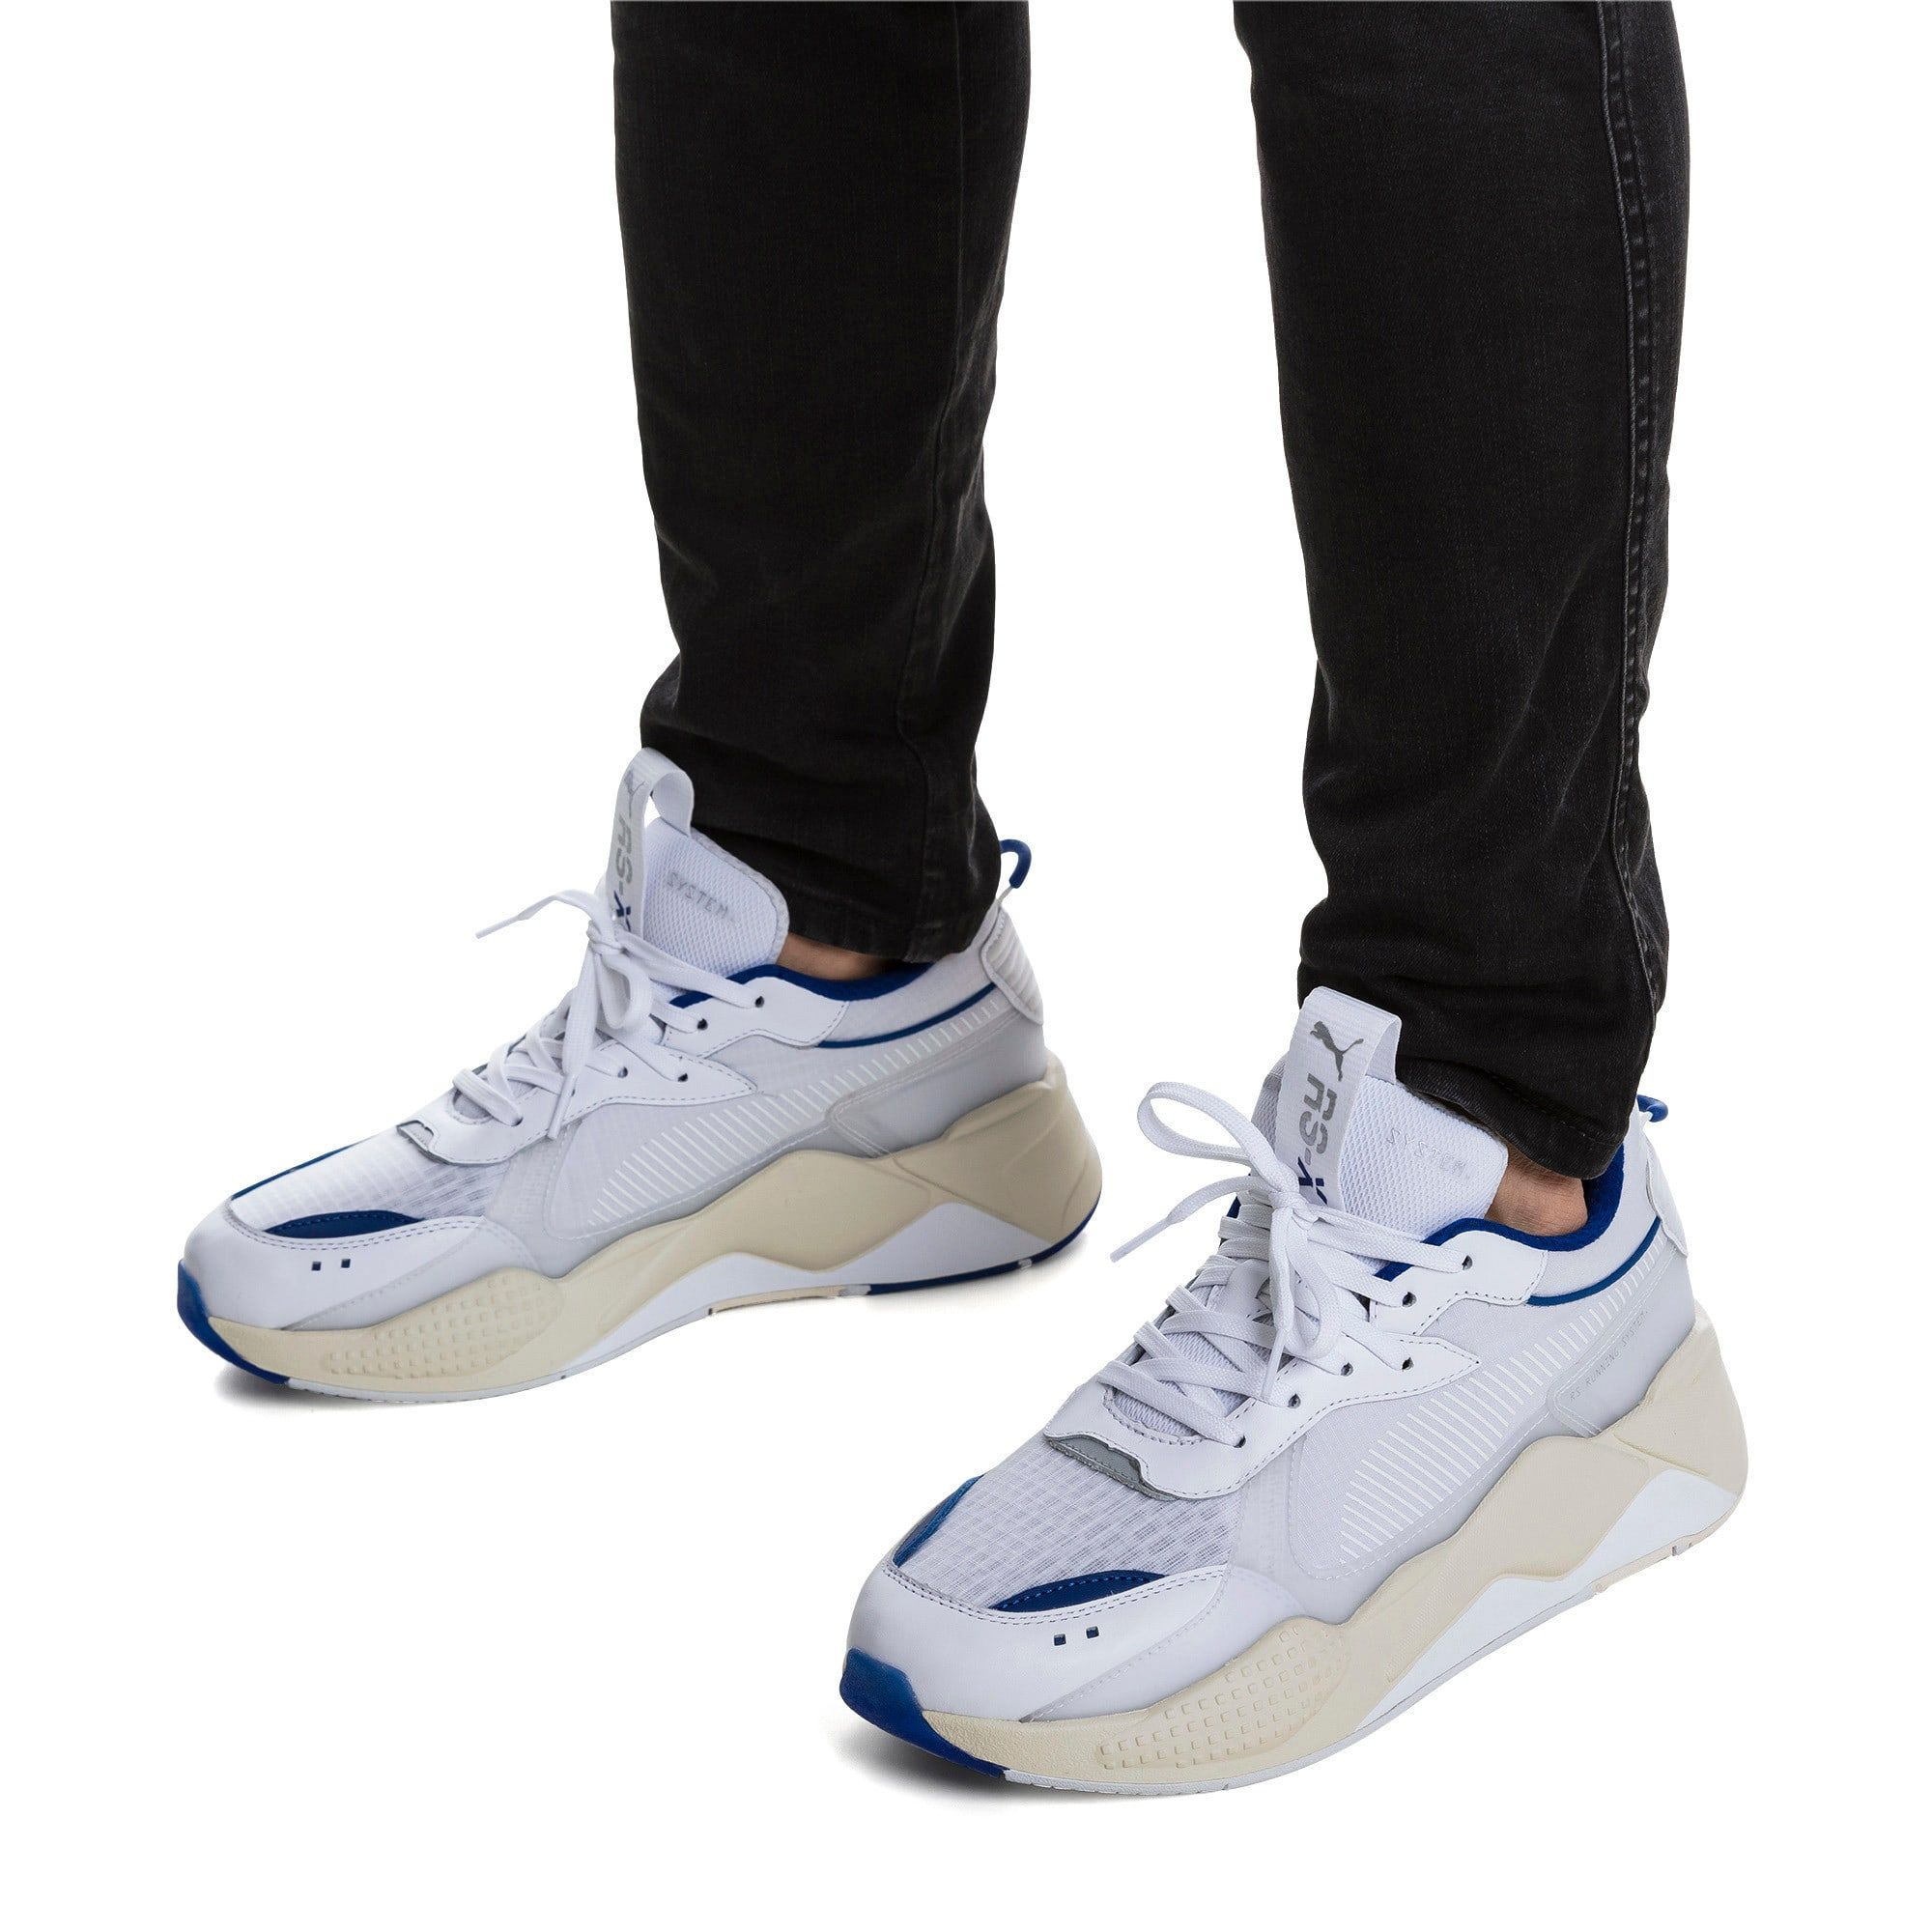 PUMA Rs X Tech Sneakers in WhiteWhisper White size 8.5